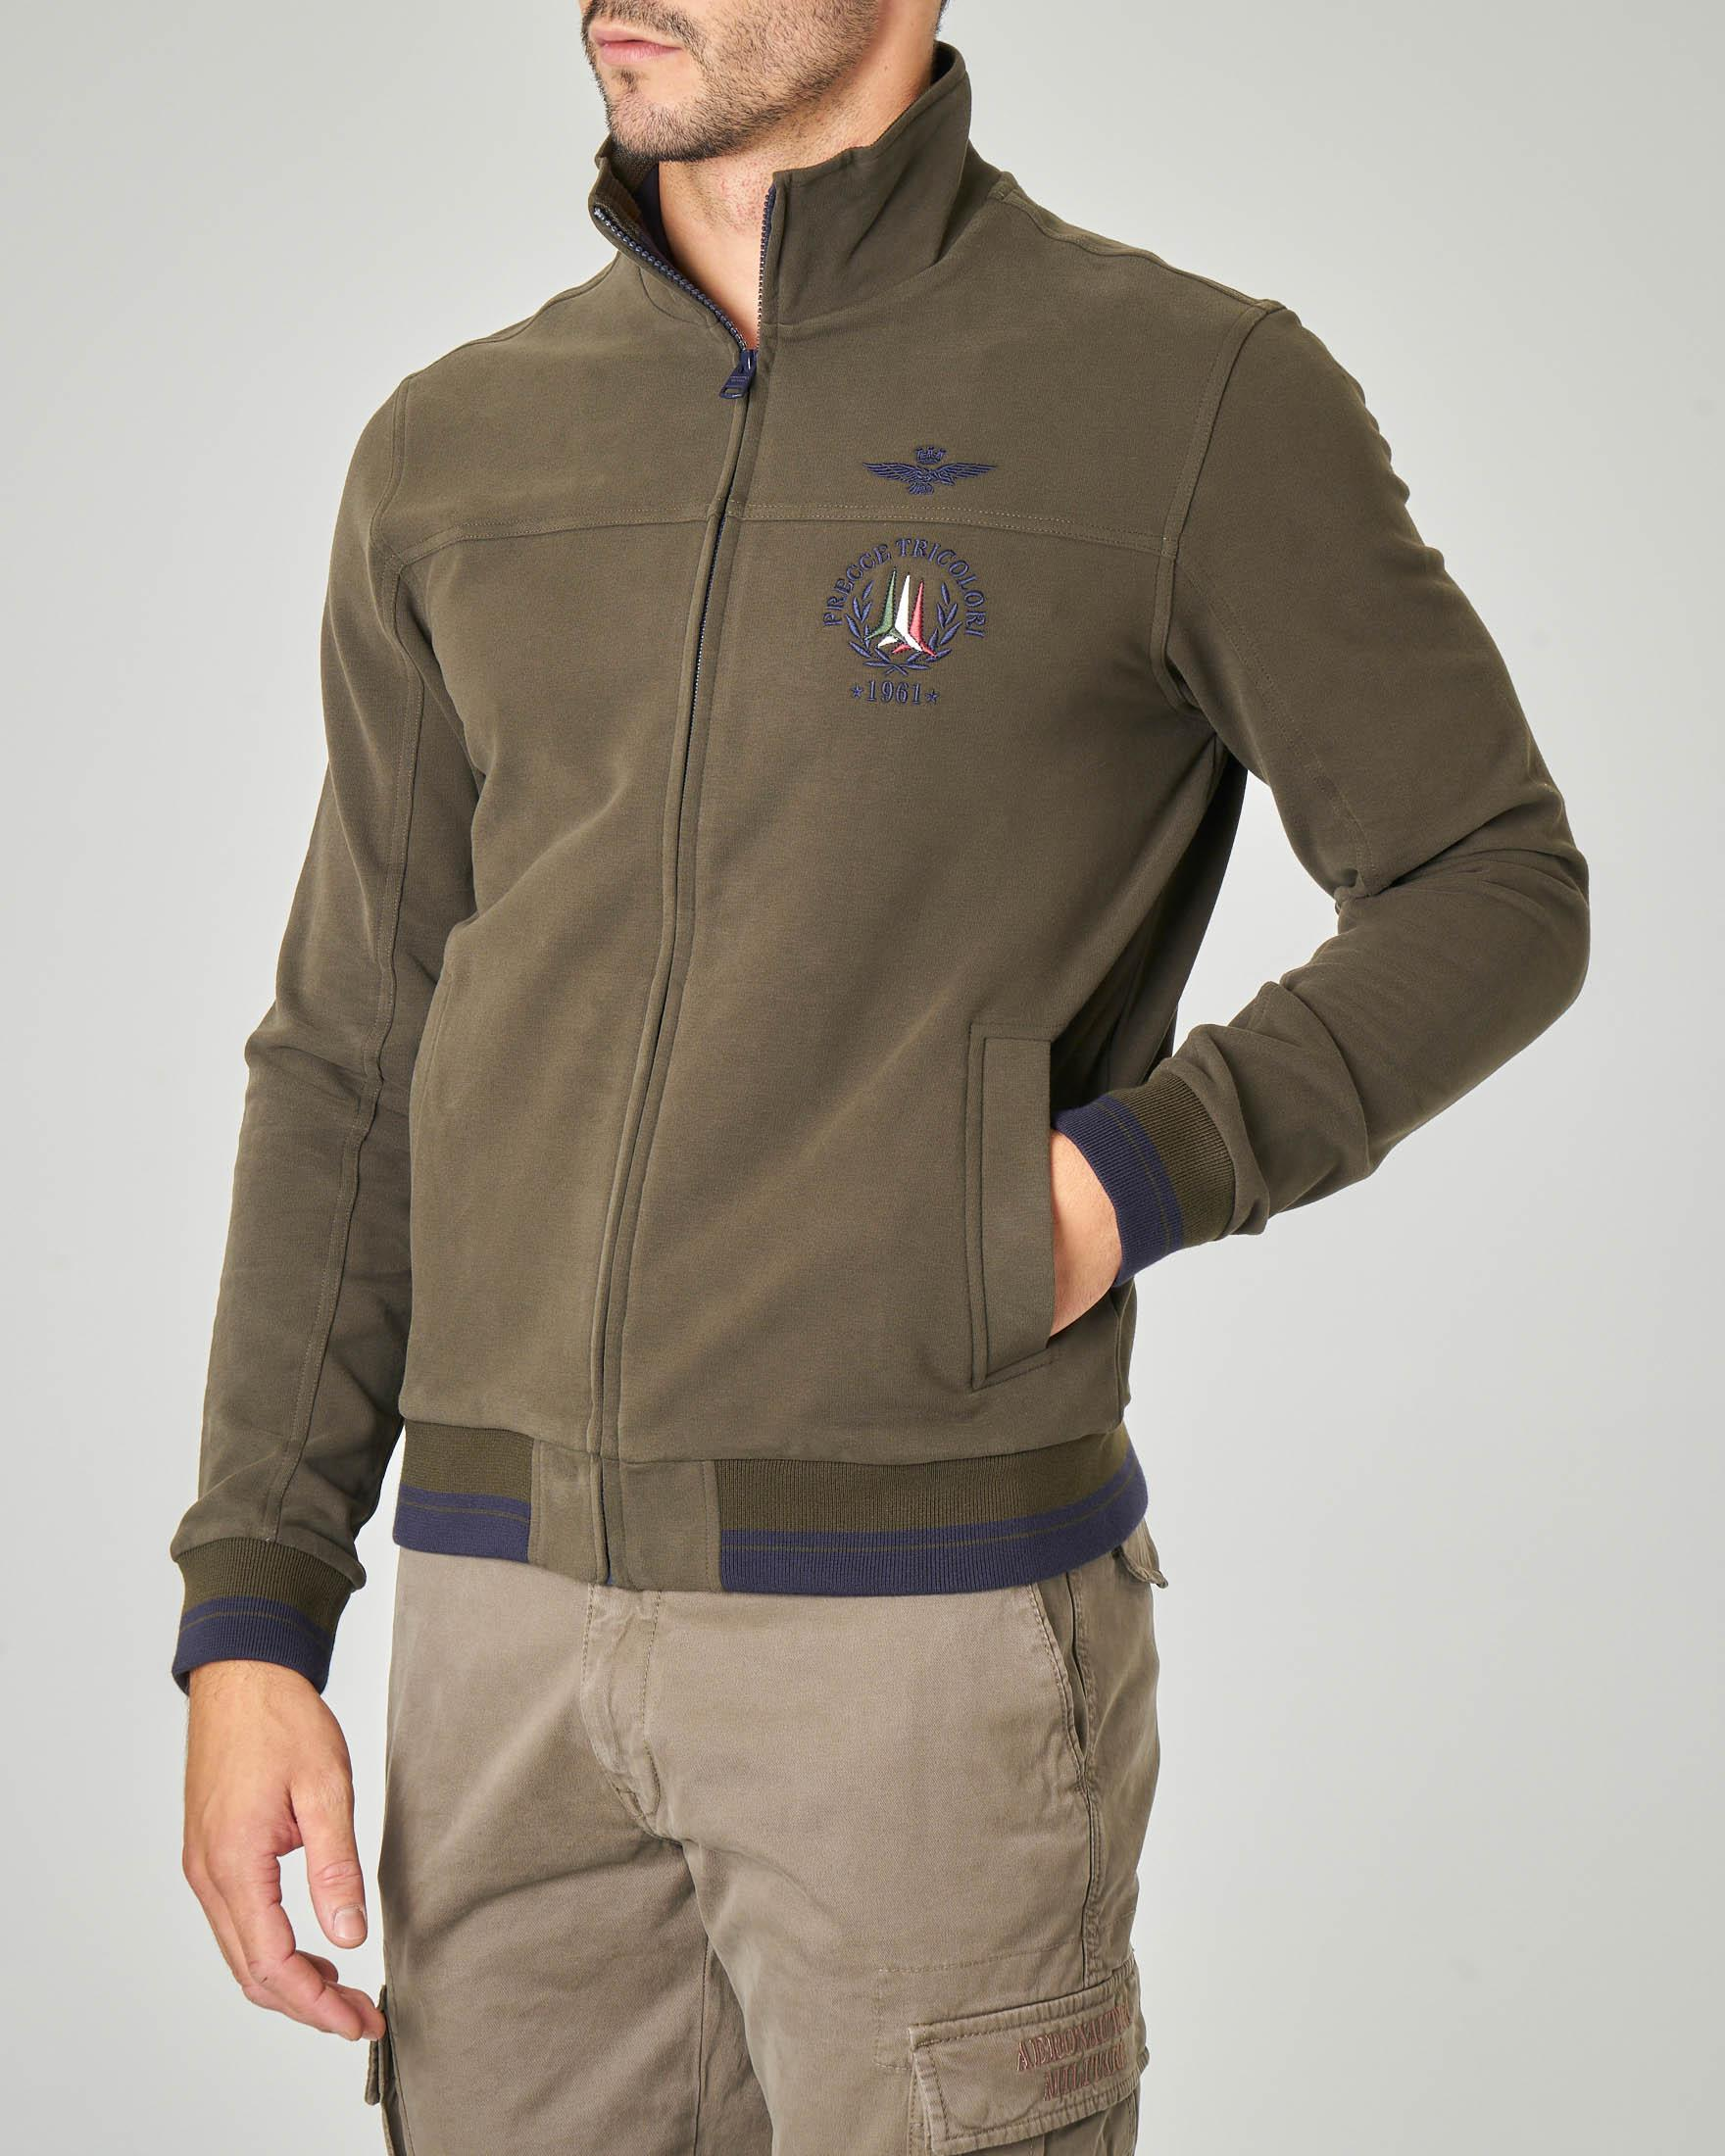 Felpa verde militare con zip in cotone stretch